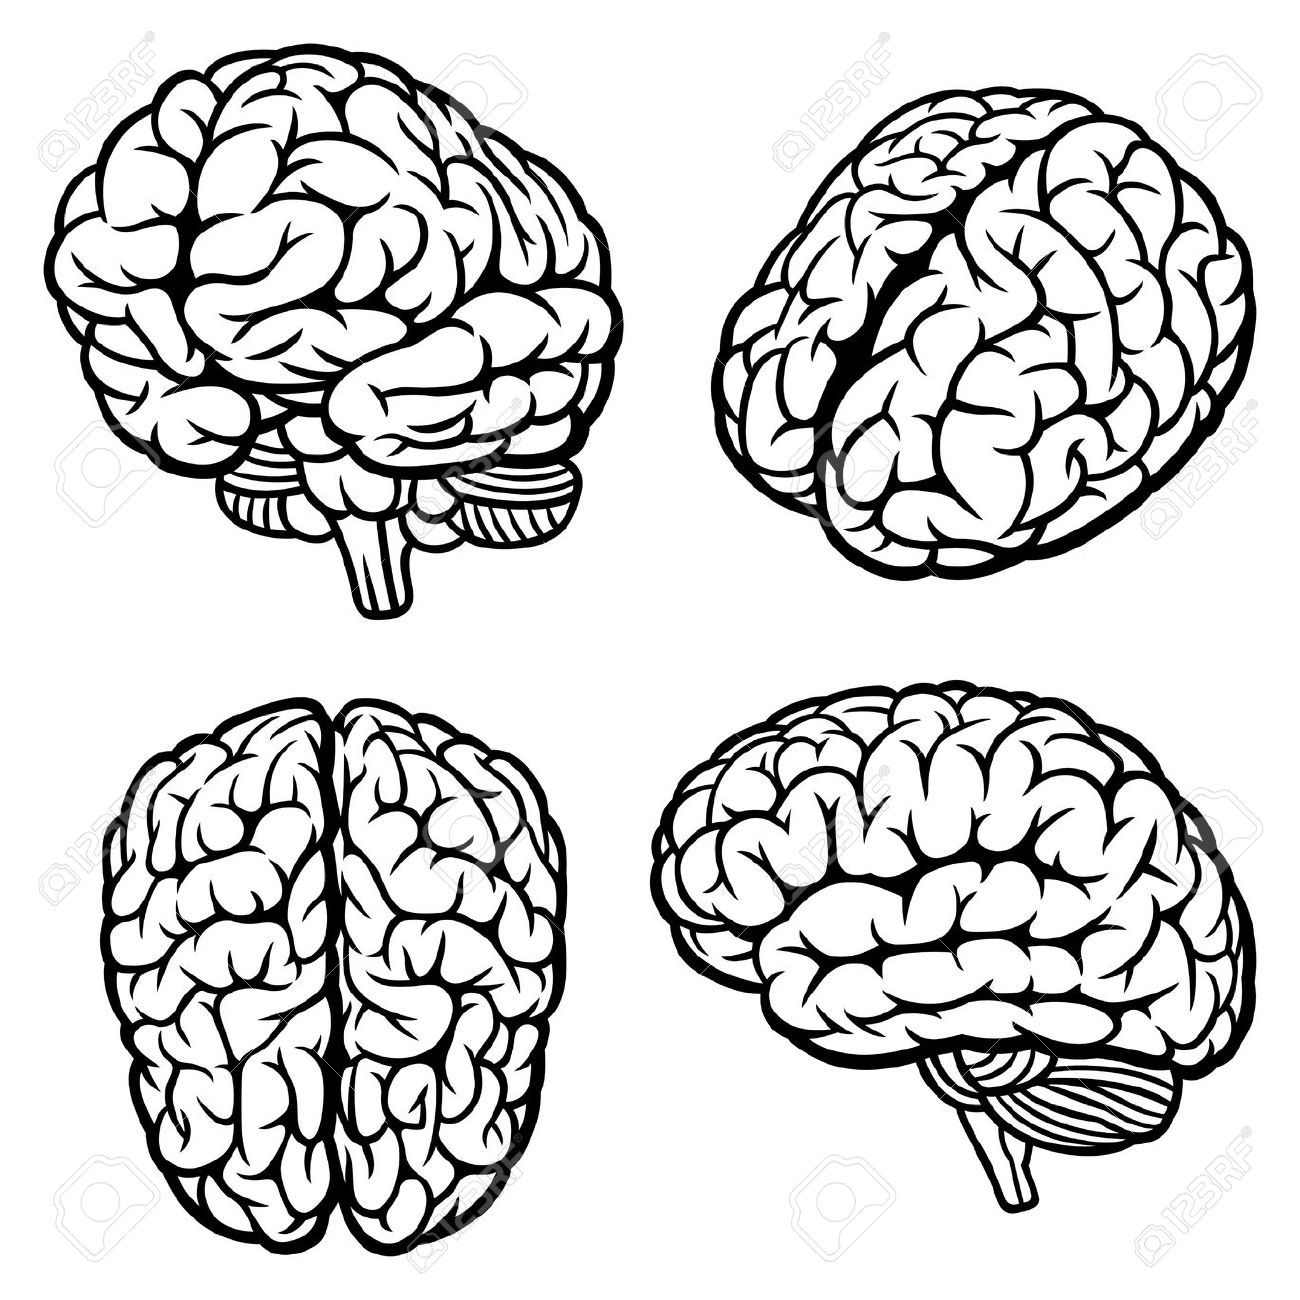 brain outline clipart black and white forward - Clipground